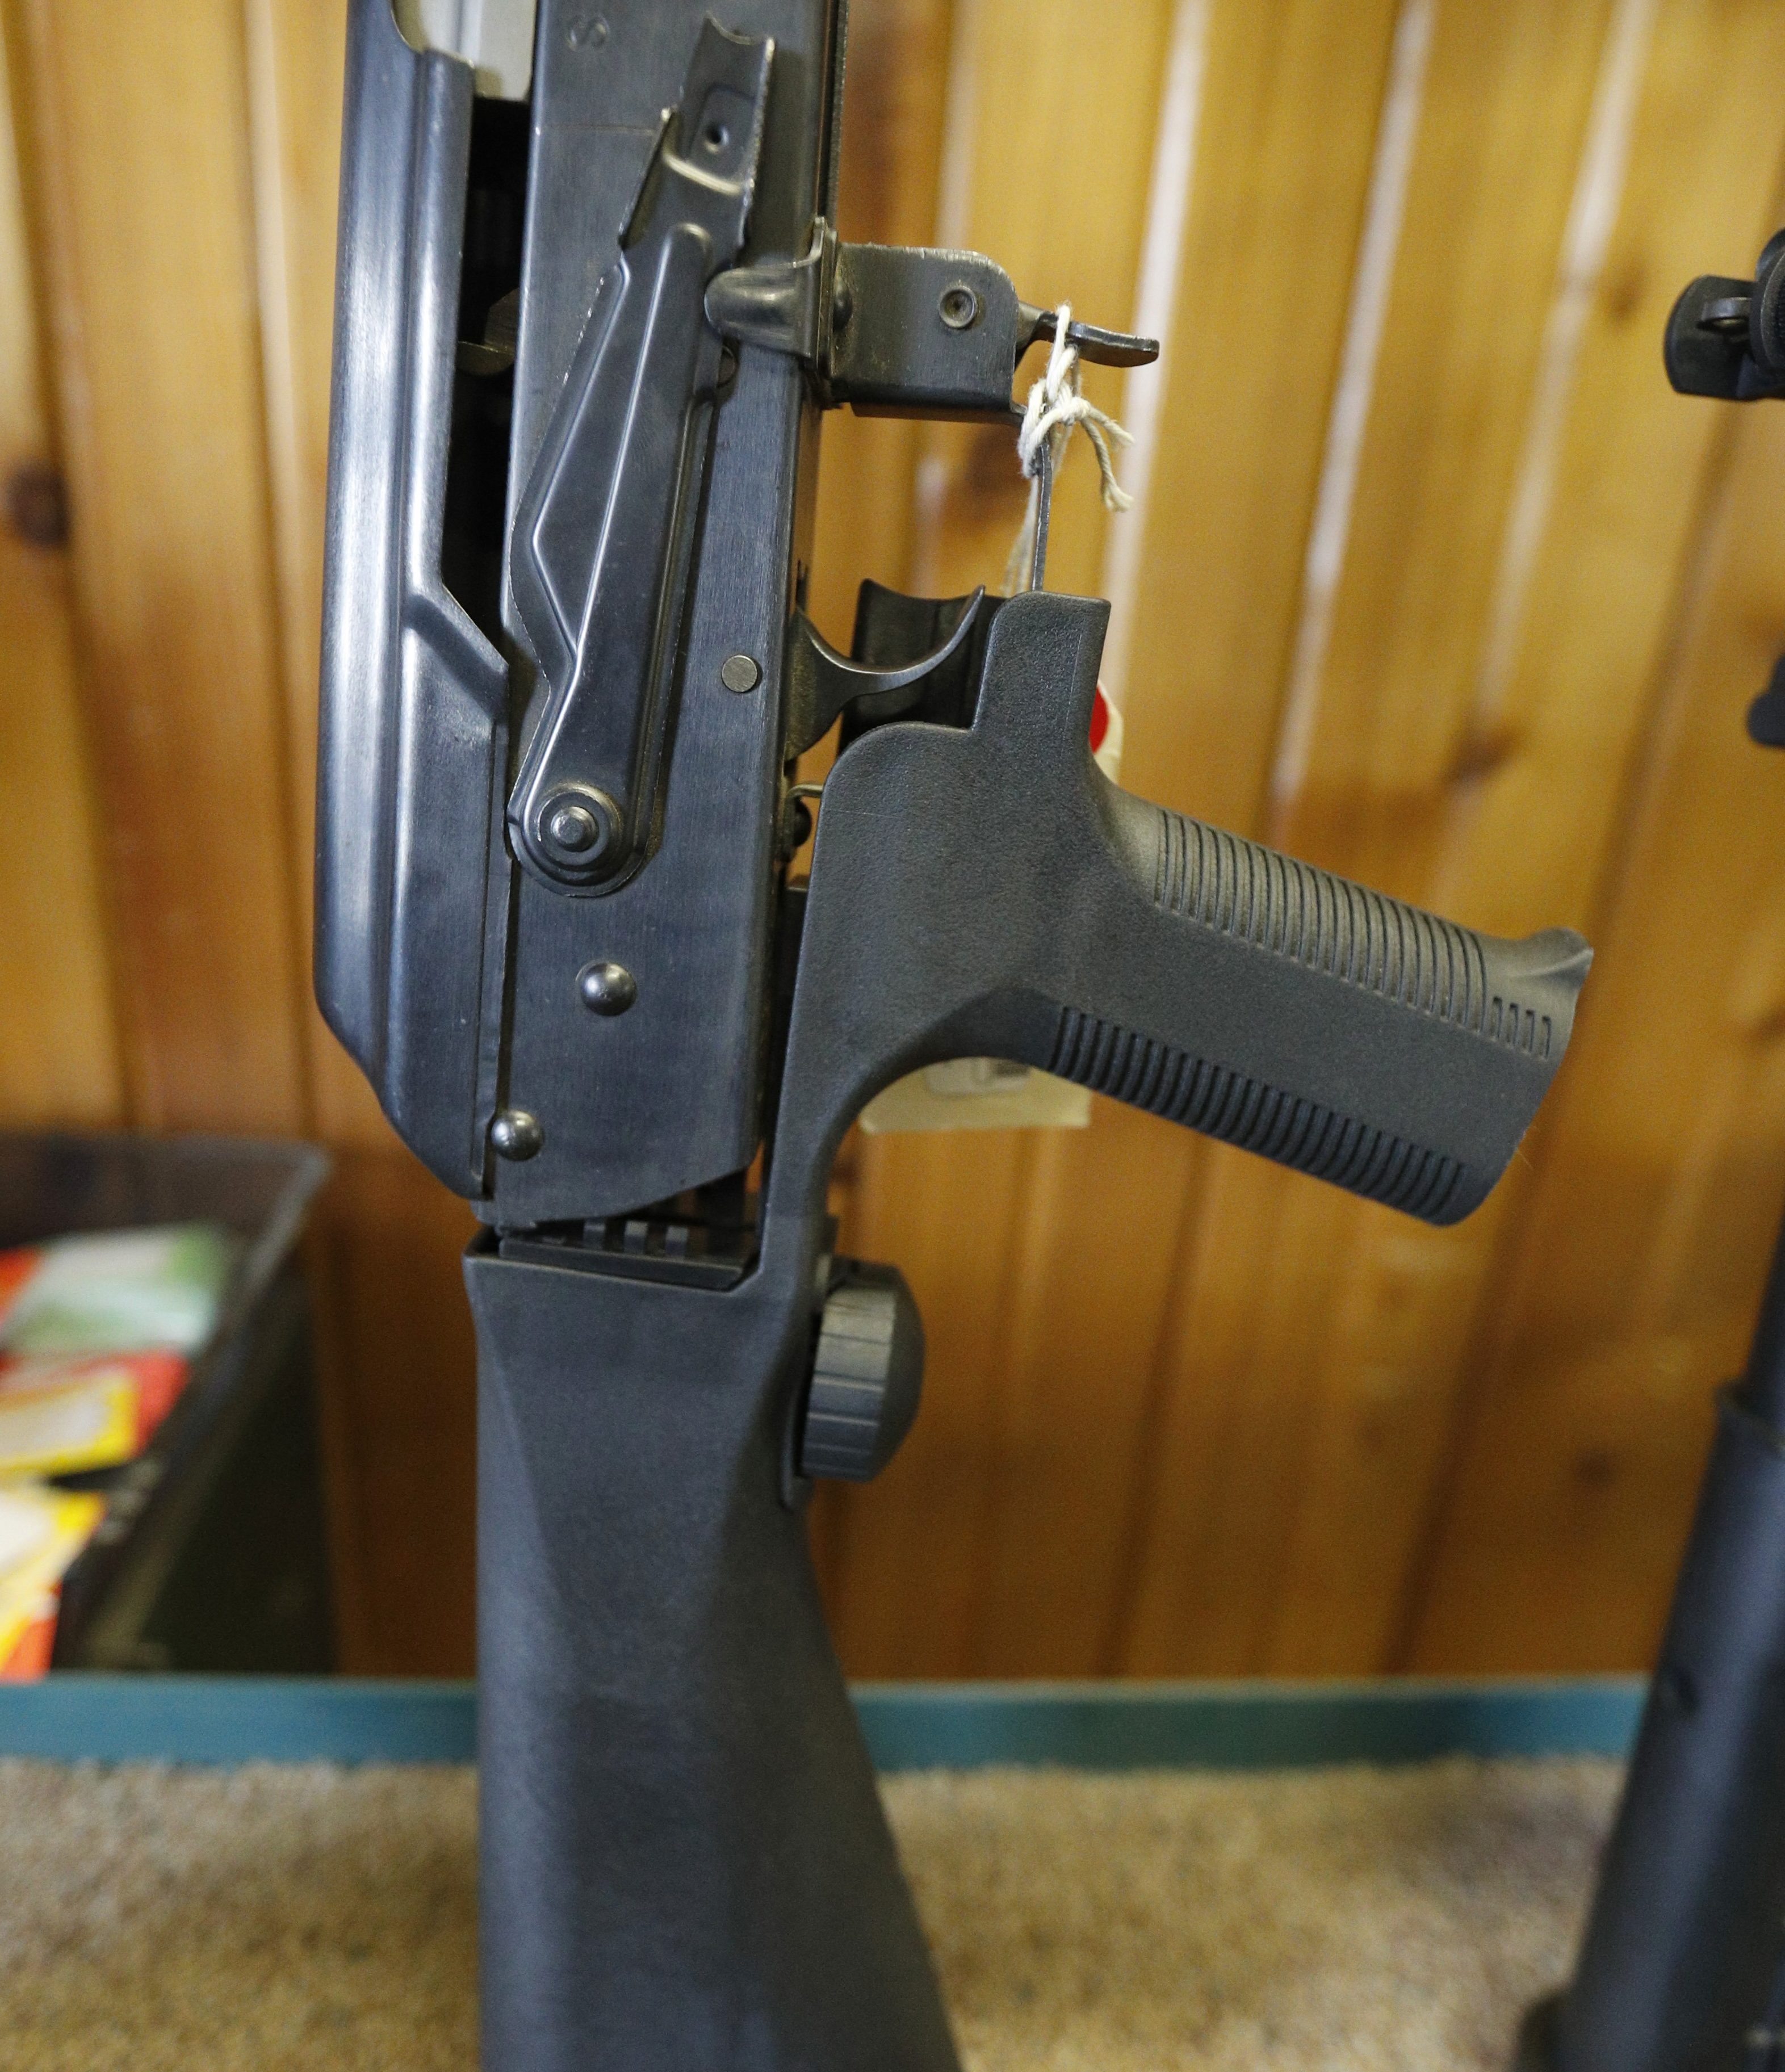 An AK-47 with a bump stock is shown at Good Guys Guns & Range on February 15, 2018 in Orem, Utah. An AR-15 was used in the Marjory Stoneman Douglas High School shooting in Parkland, Florida. (Photo by George Frey/Getty Images)